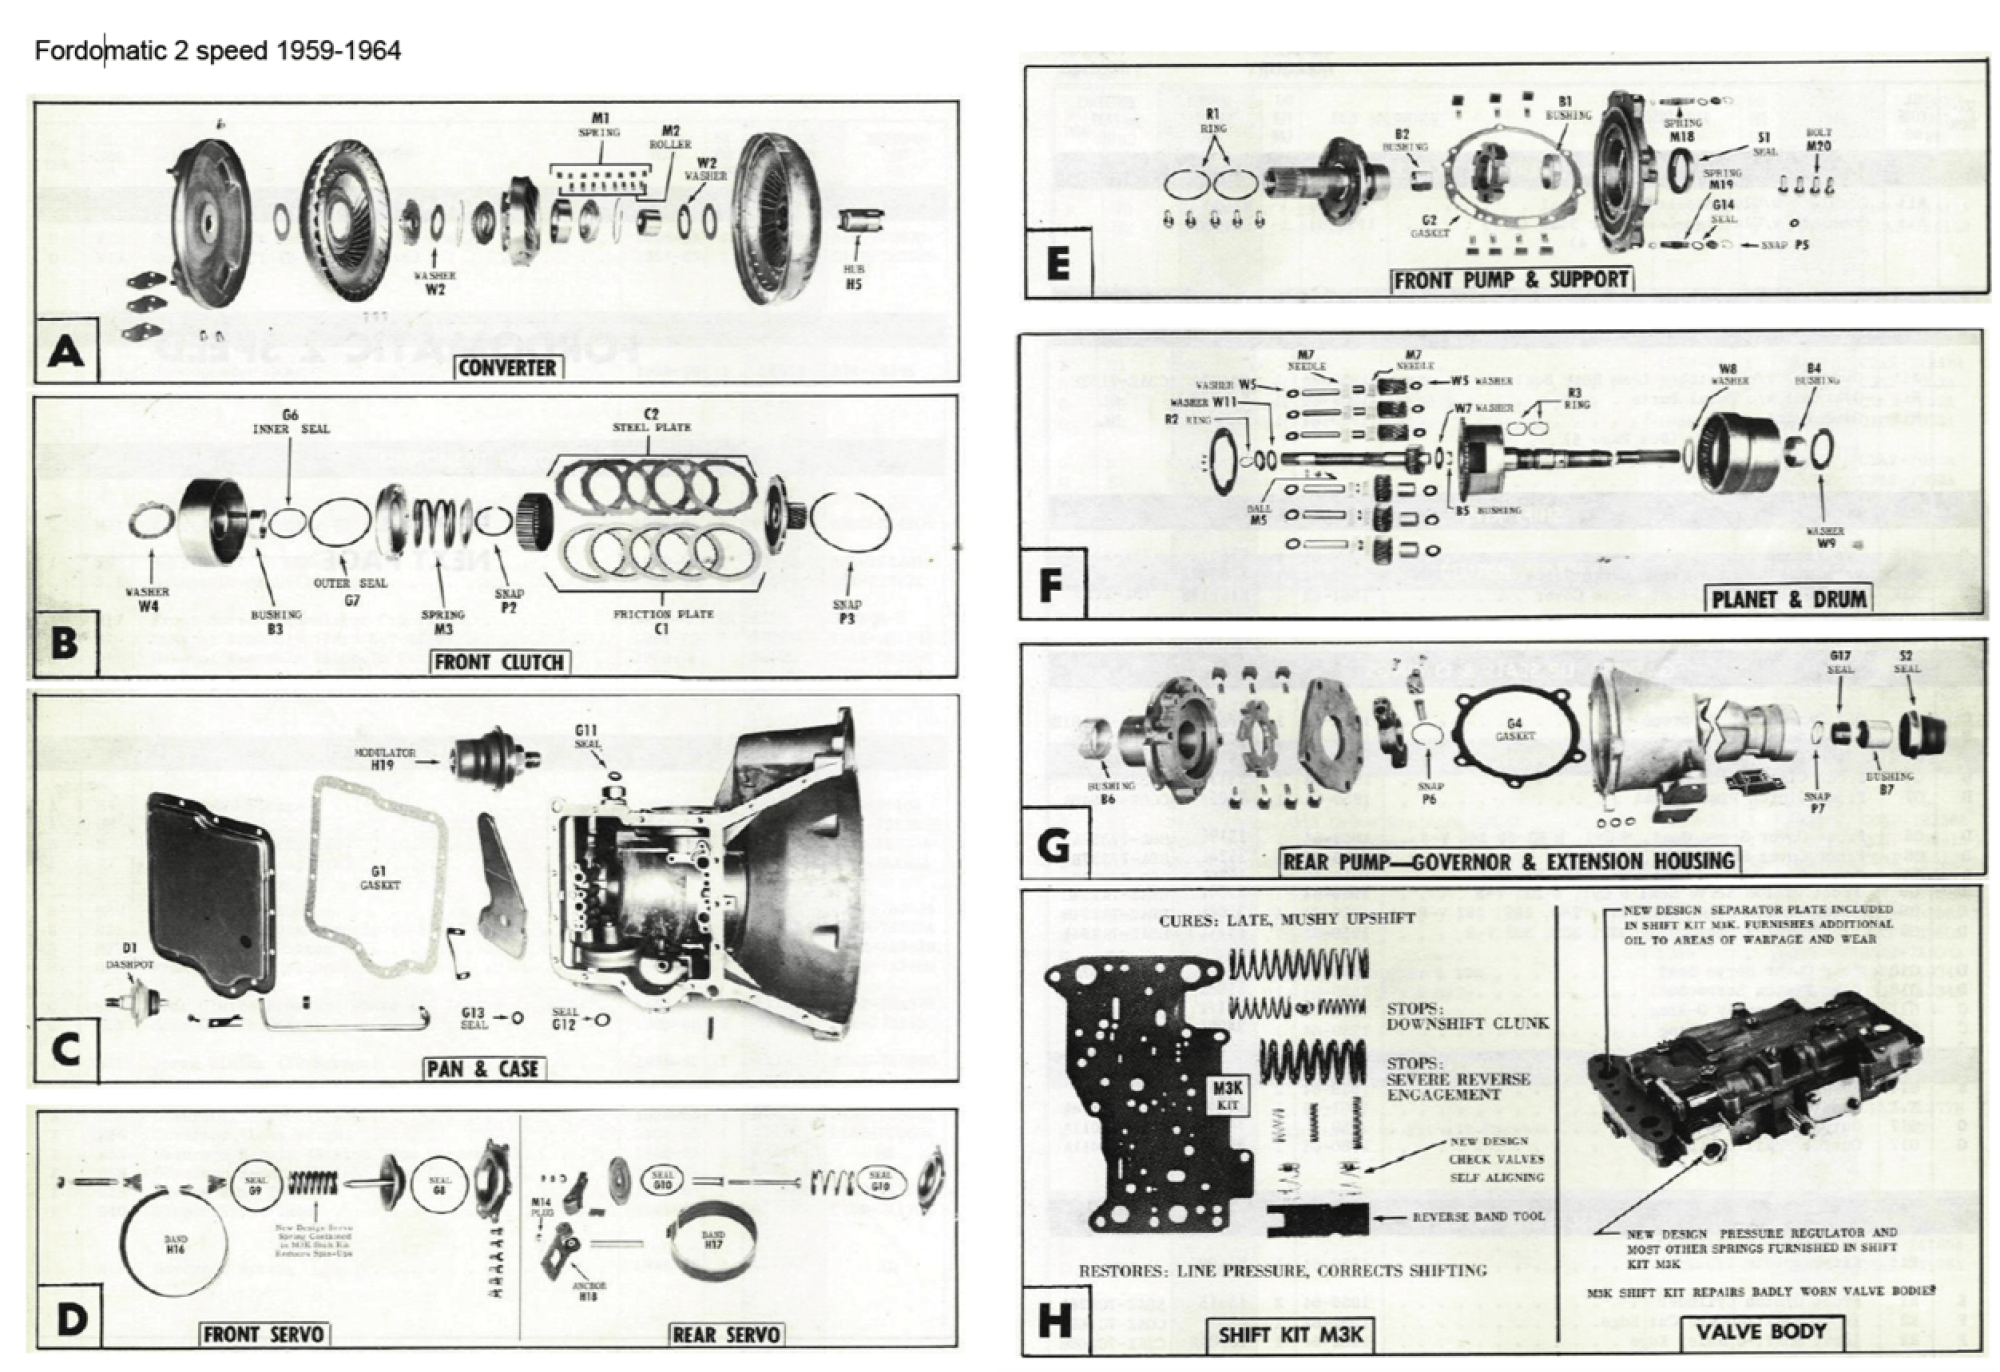 hight resolution of fordomatic 2 speed 1959 1964 fordomatic transmission diagram